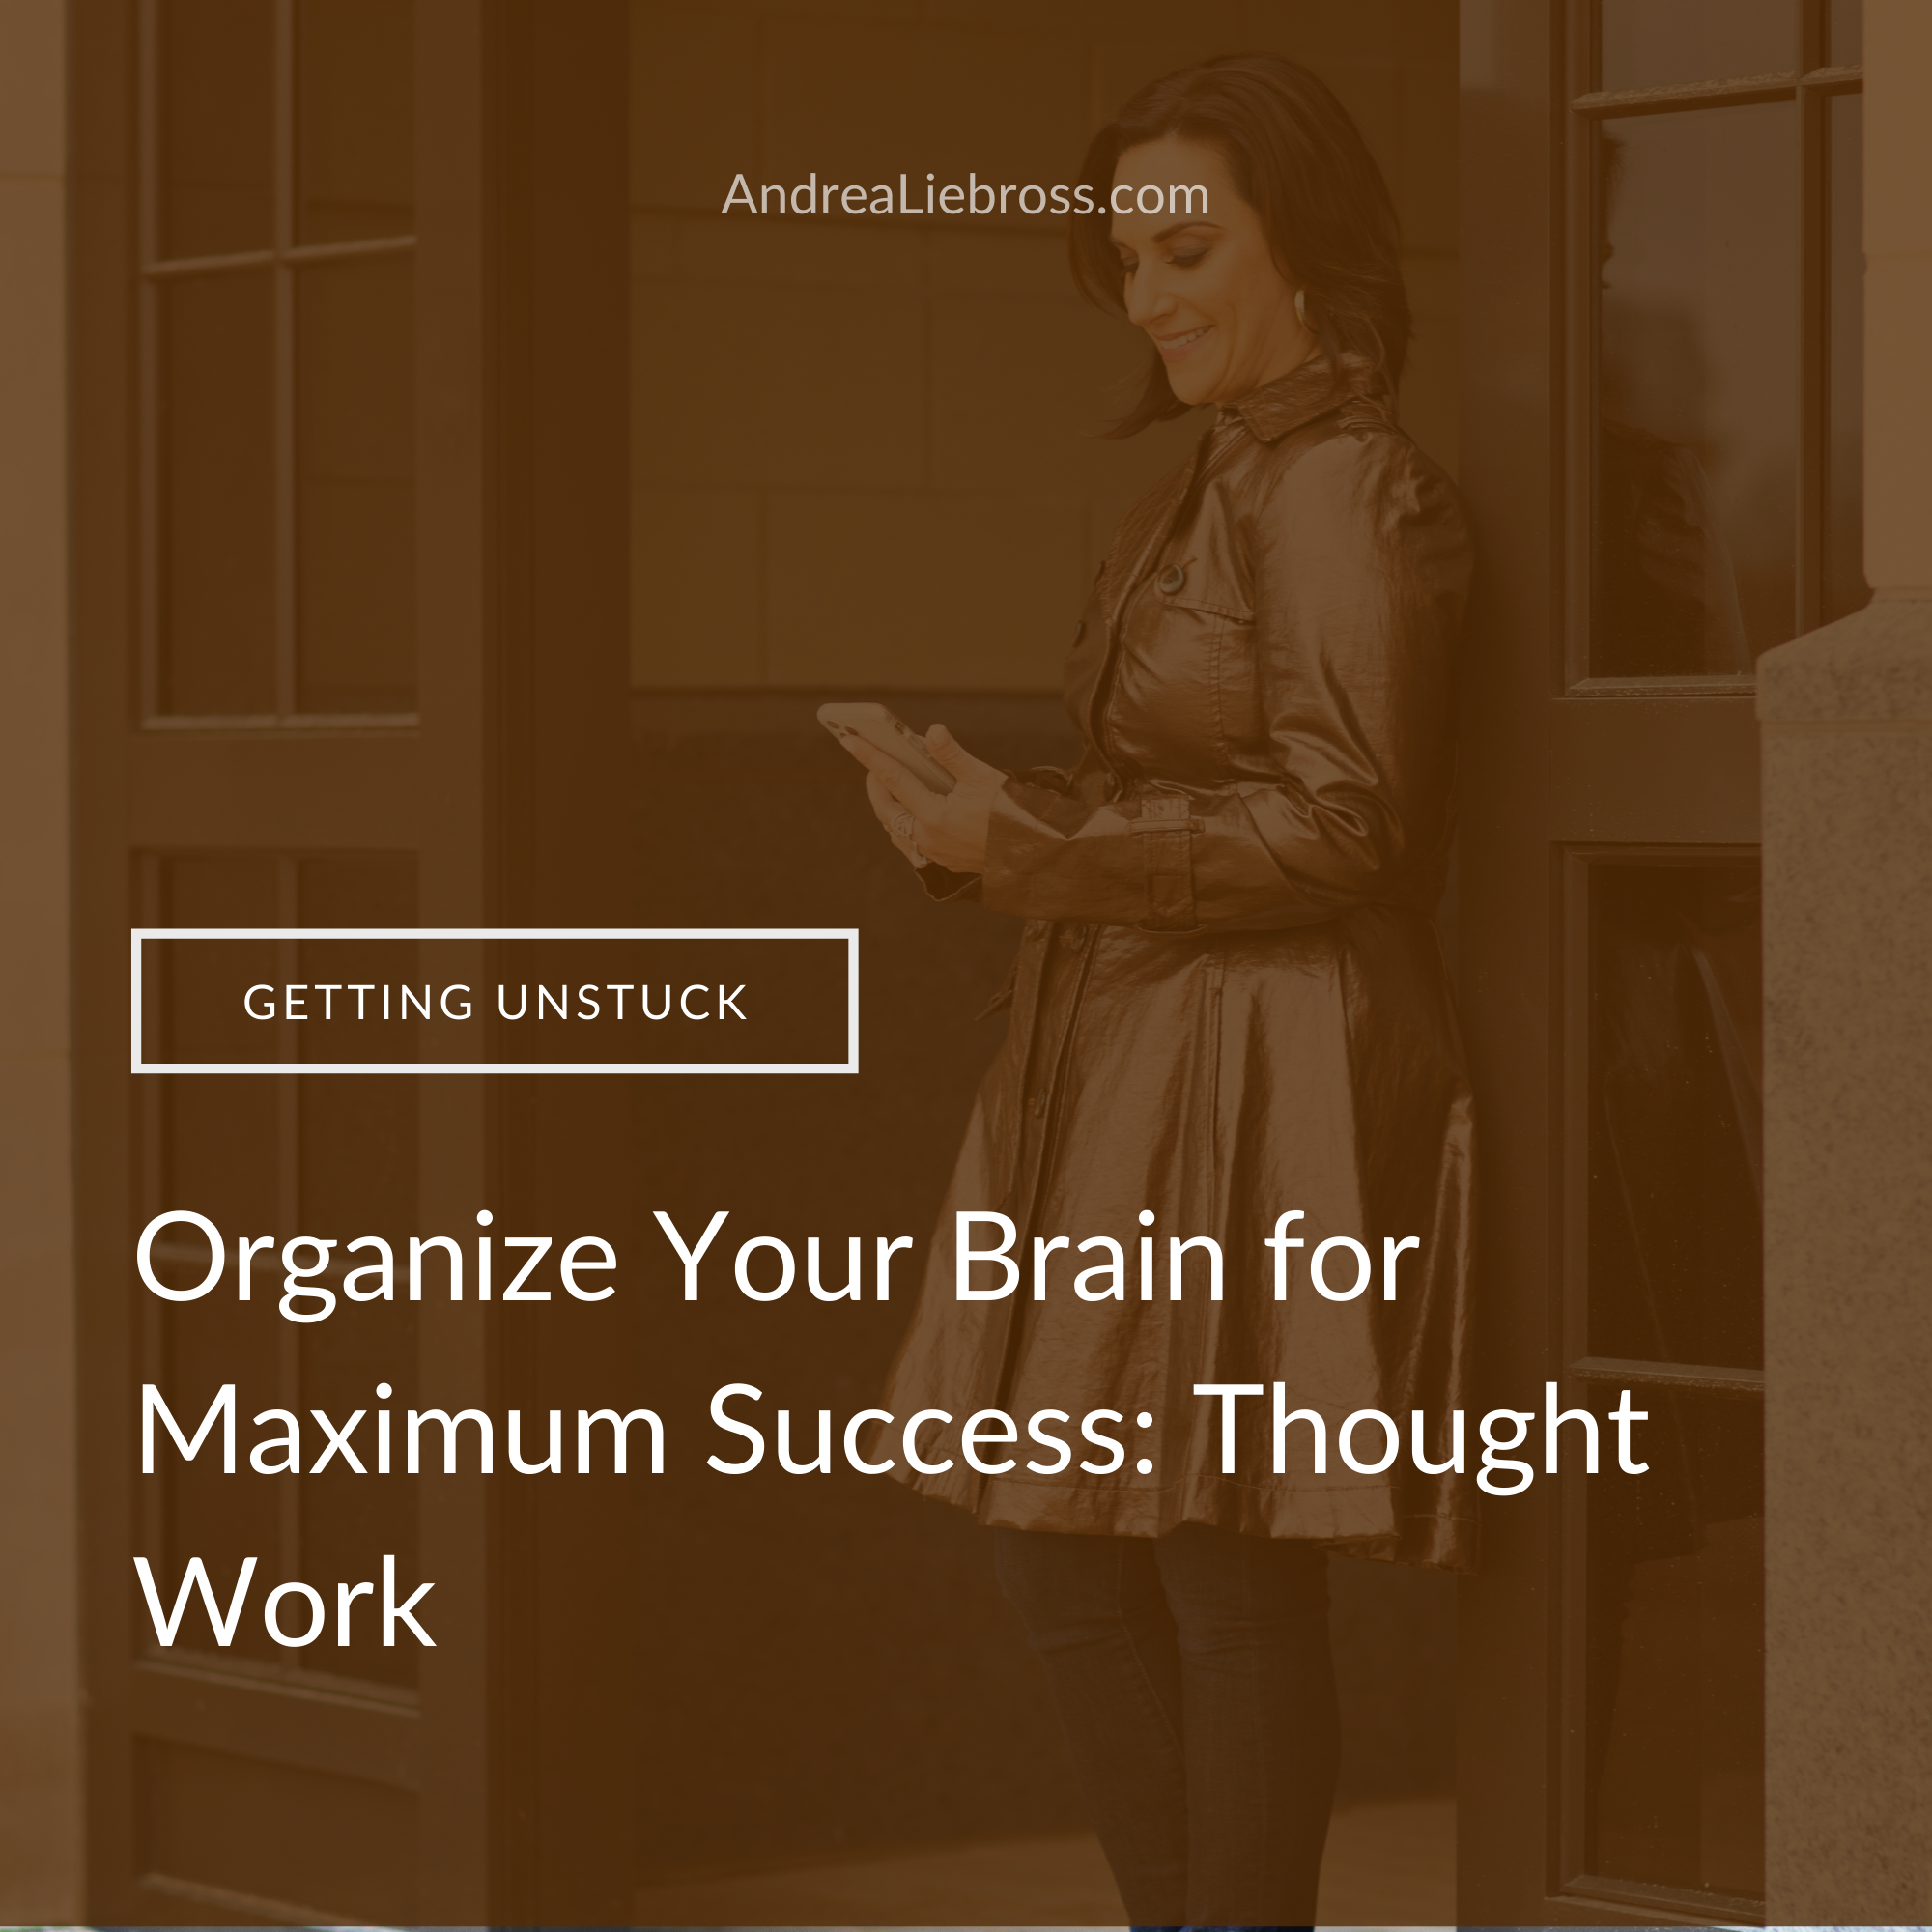 habits, thoughts, thought work, negative thoughts, feeling stuck, clarity, regret, journaling, brain dump, goals, organization, mindset, beliefsOrganize Your Brain for Maximum Success: Thought Work